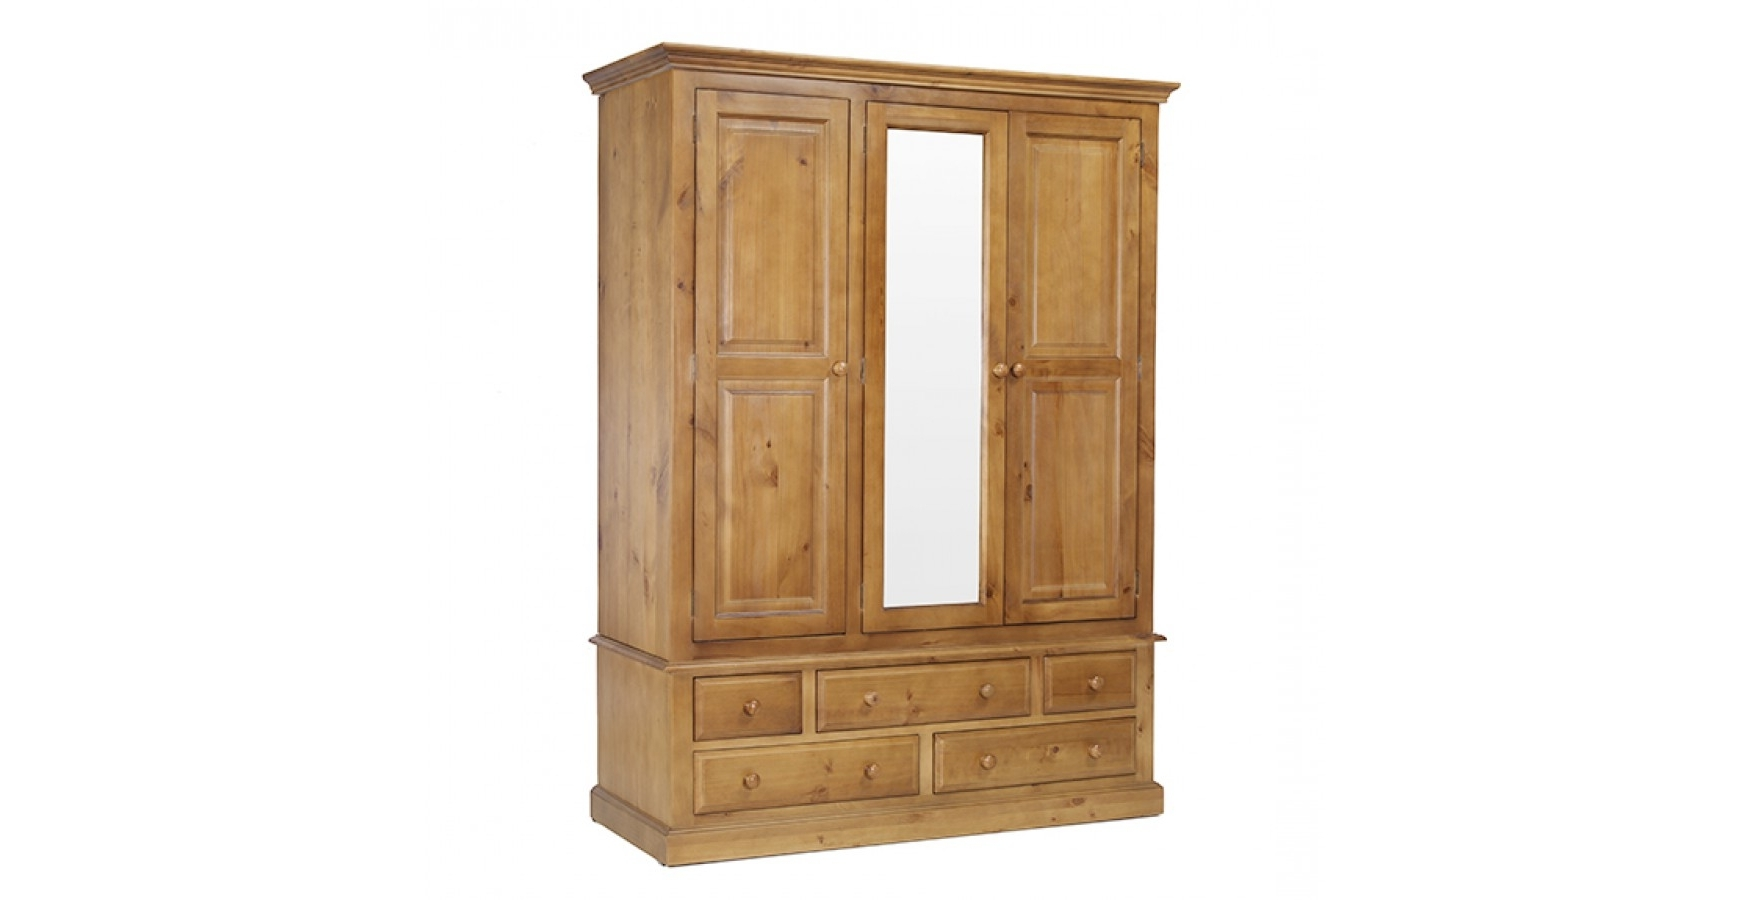 Well Known Pine Wardrobes With Drawers With Regard To Country Pine Triple Wardrobe With Drawers – Lifestyle Furniture Uk (View 3 of 15)